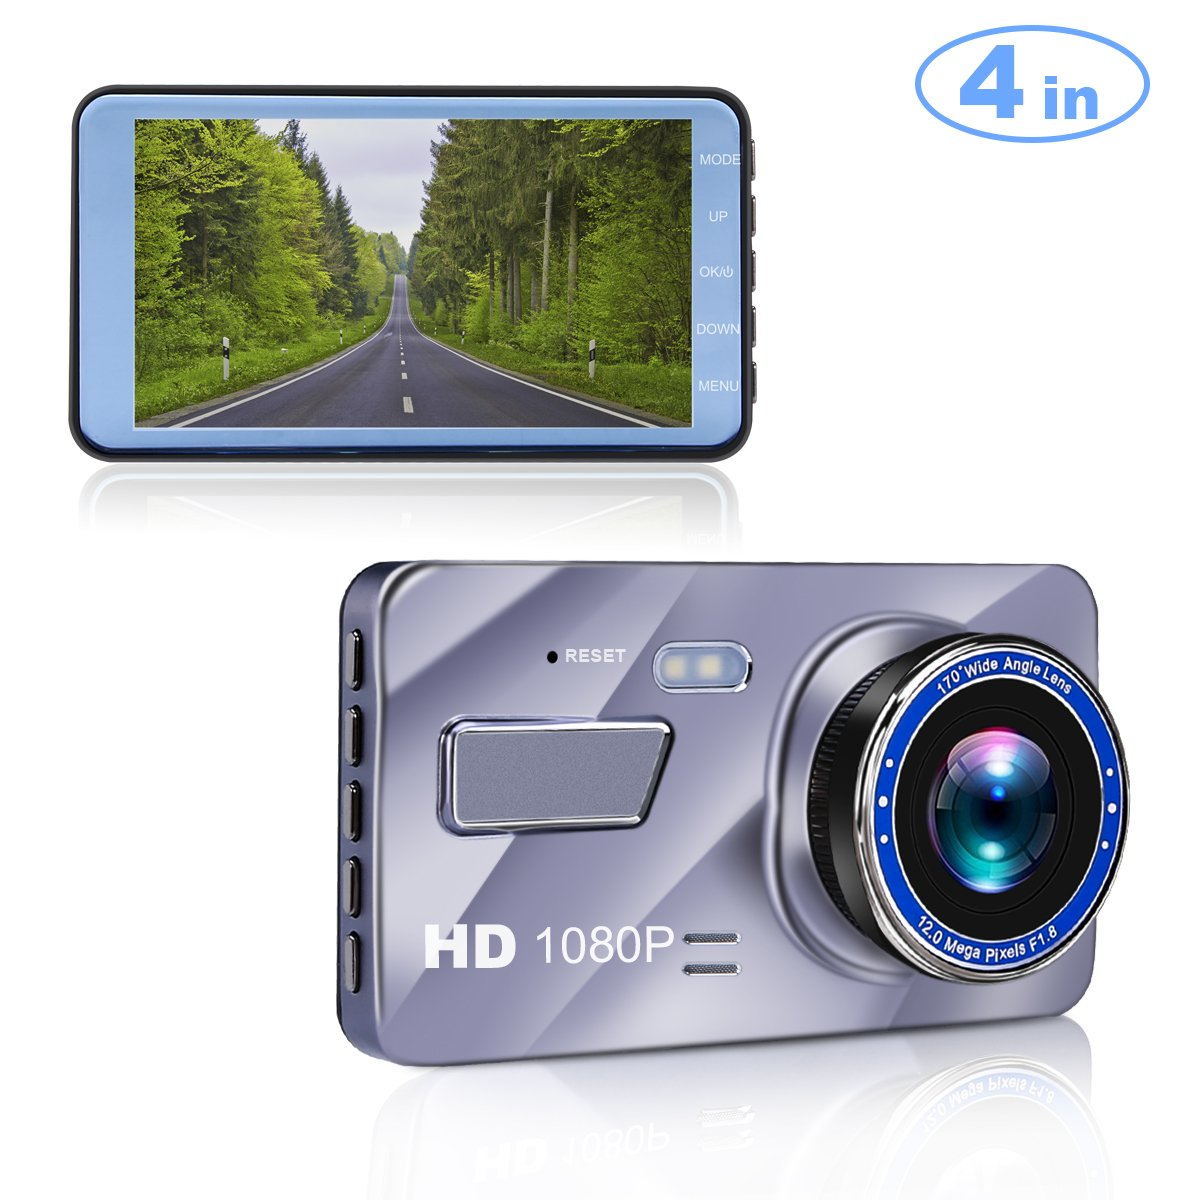 Blusmart Dash Cam, 4'' LCD FHD 1080P 170 Degree Wide Angle Dash Camera for Cars, Dashboard Camera Recorder with Video Sensor, G-Sensor, WDR, Loop Recording【2018 Upgraded】